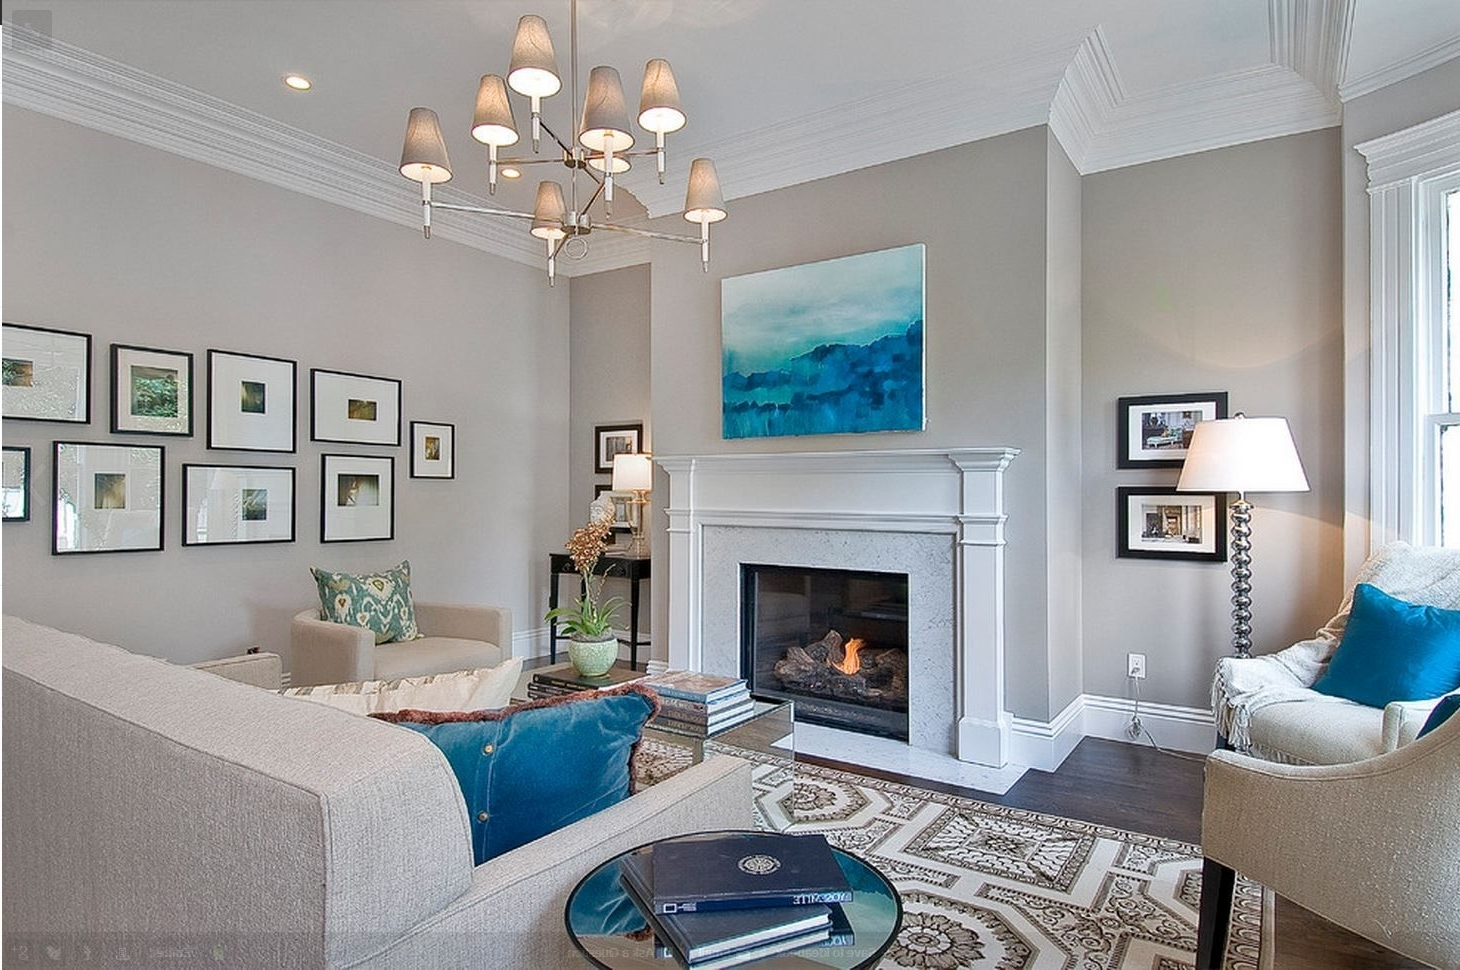 Paint Color Abalone 2108 60 Benjamin Moore. Love The Color Abalone Paint Color Living Room